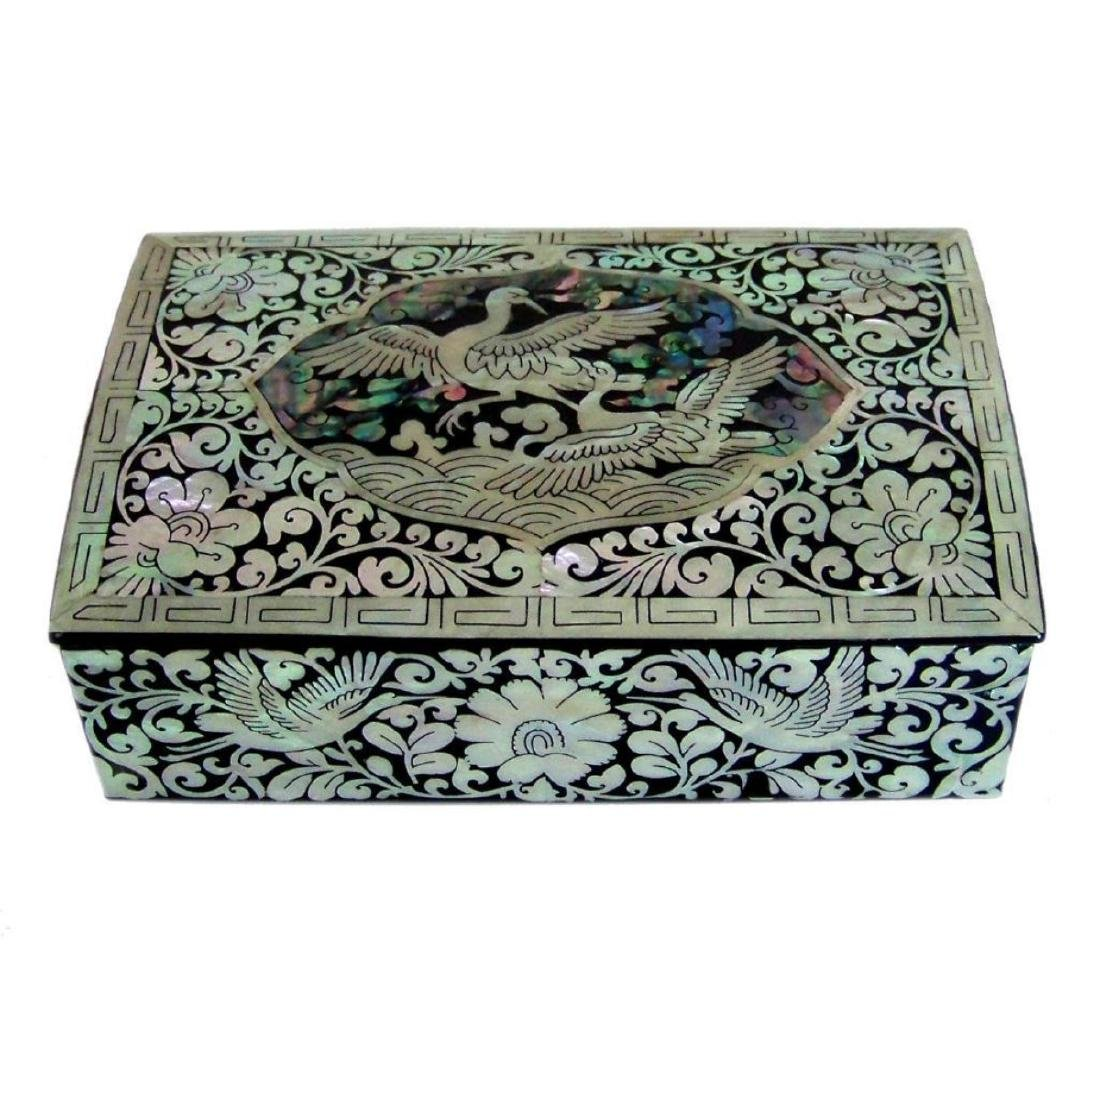 Mother Of Pearl Inlaid Box_ Lacquer Ware Inlaid - 7